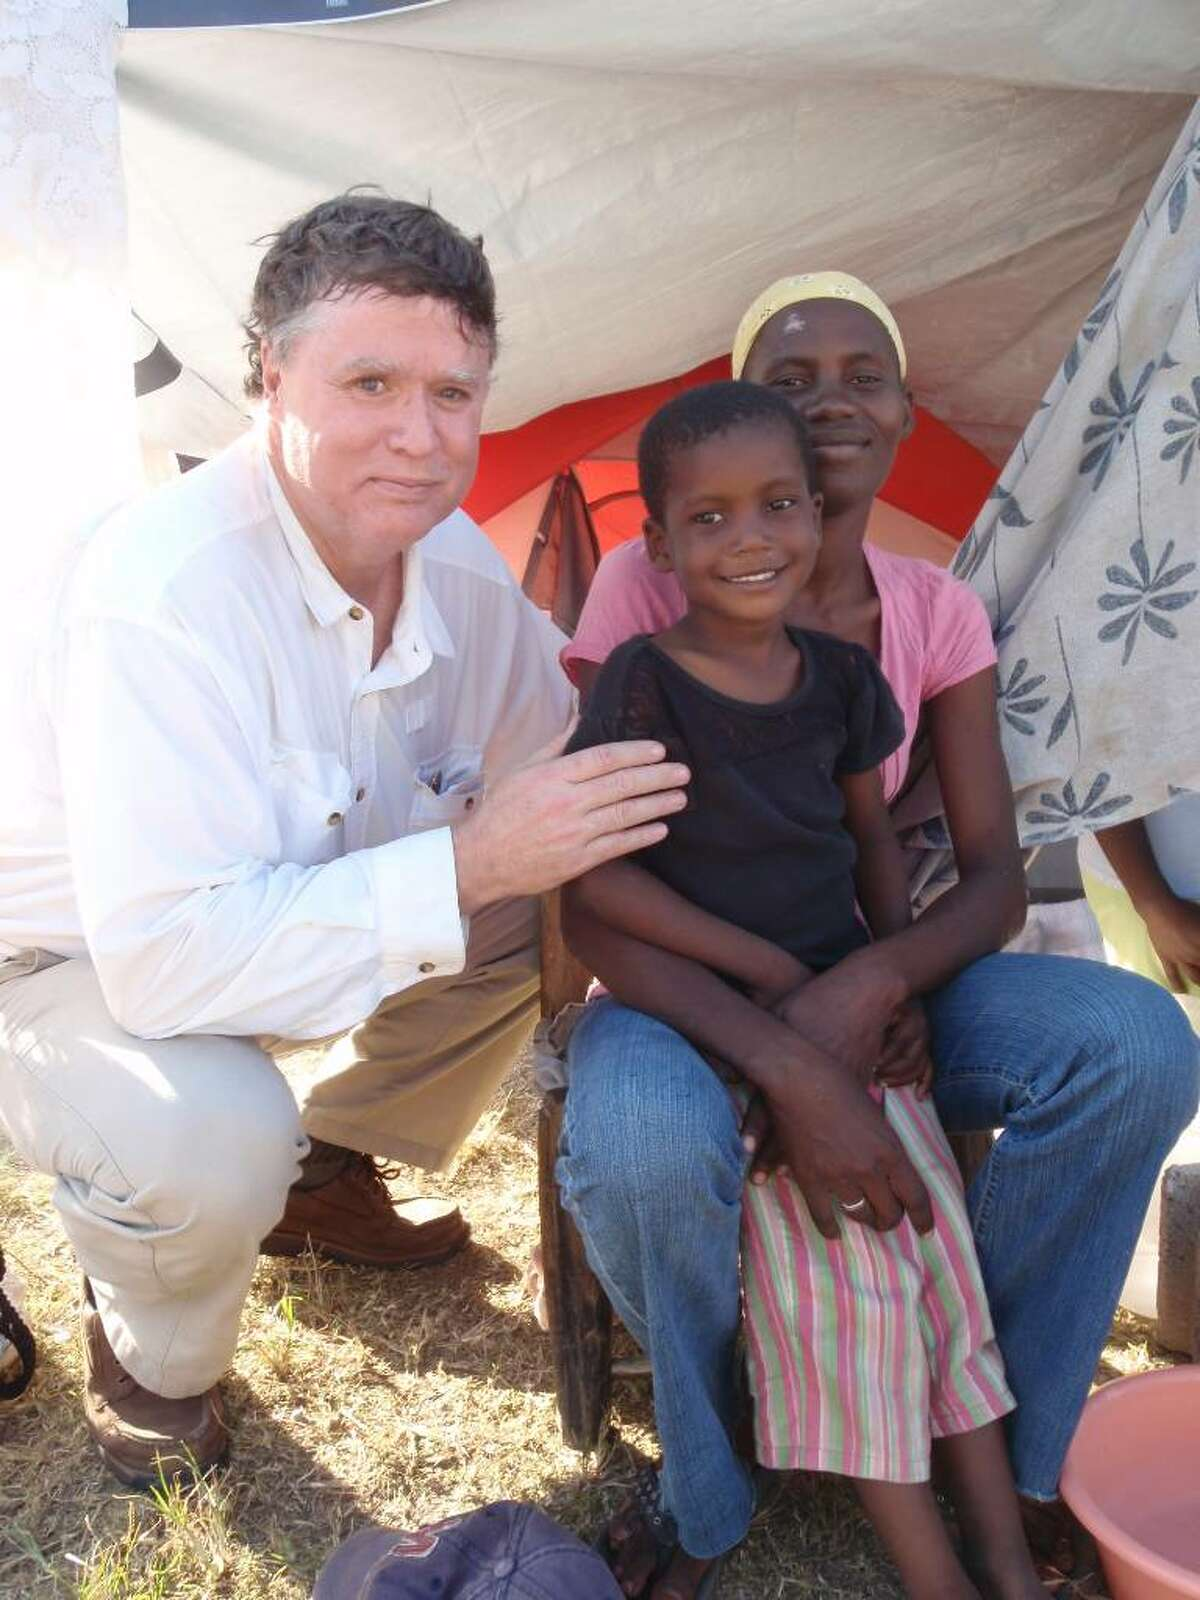 Dr. David Reed poses with victims of the Haitian earthquake, Jan. 2010.